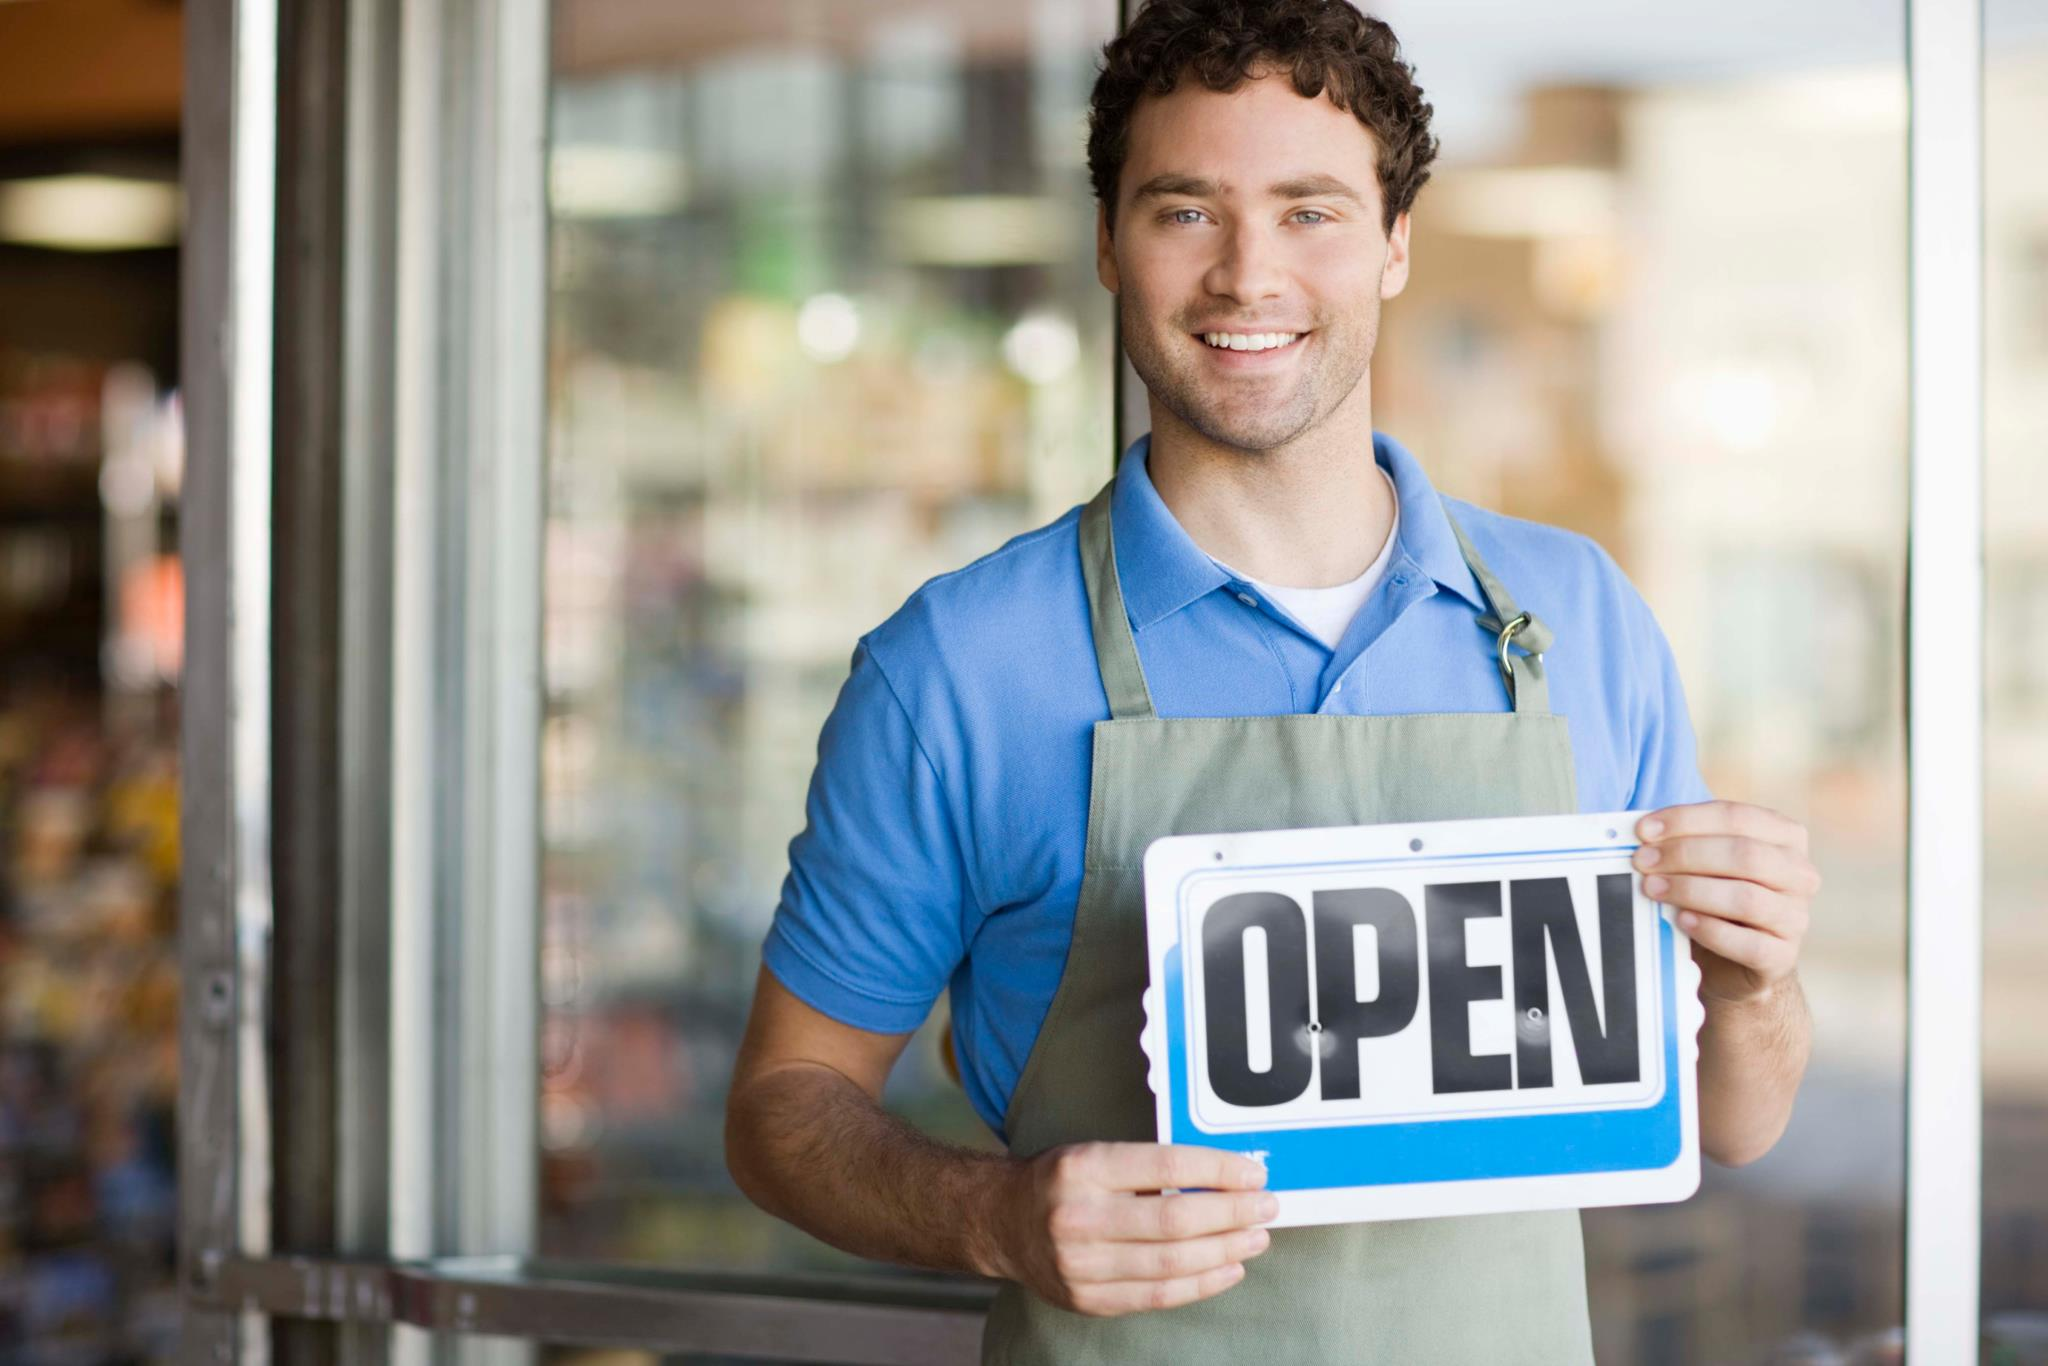 Should weekend penalty rates be cut?